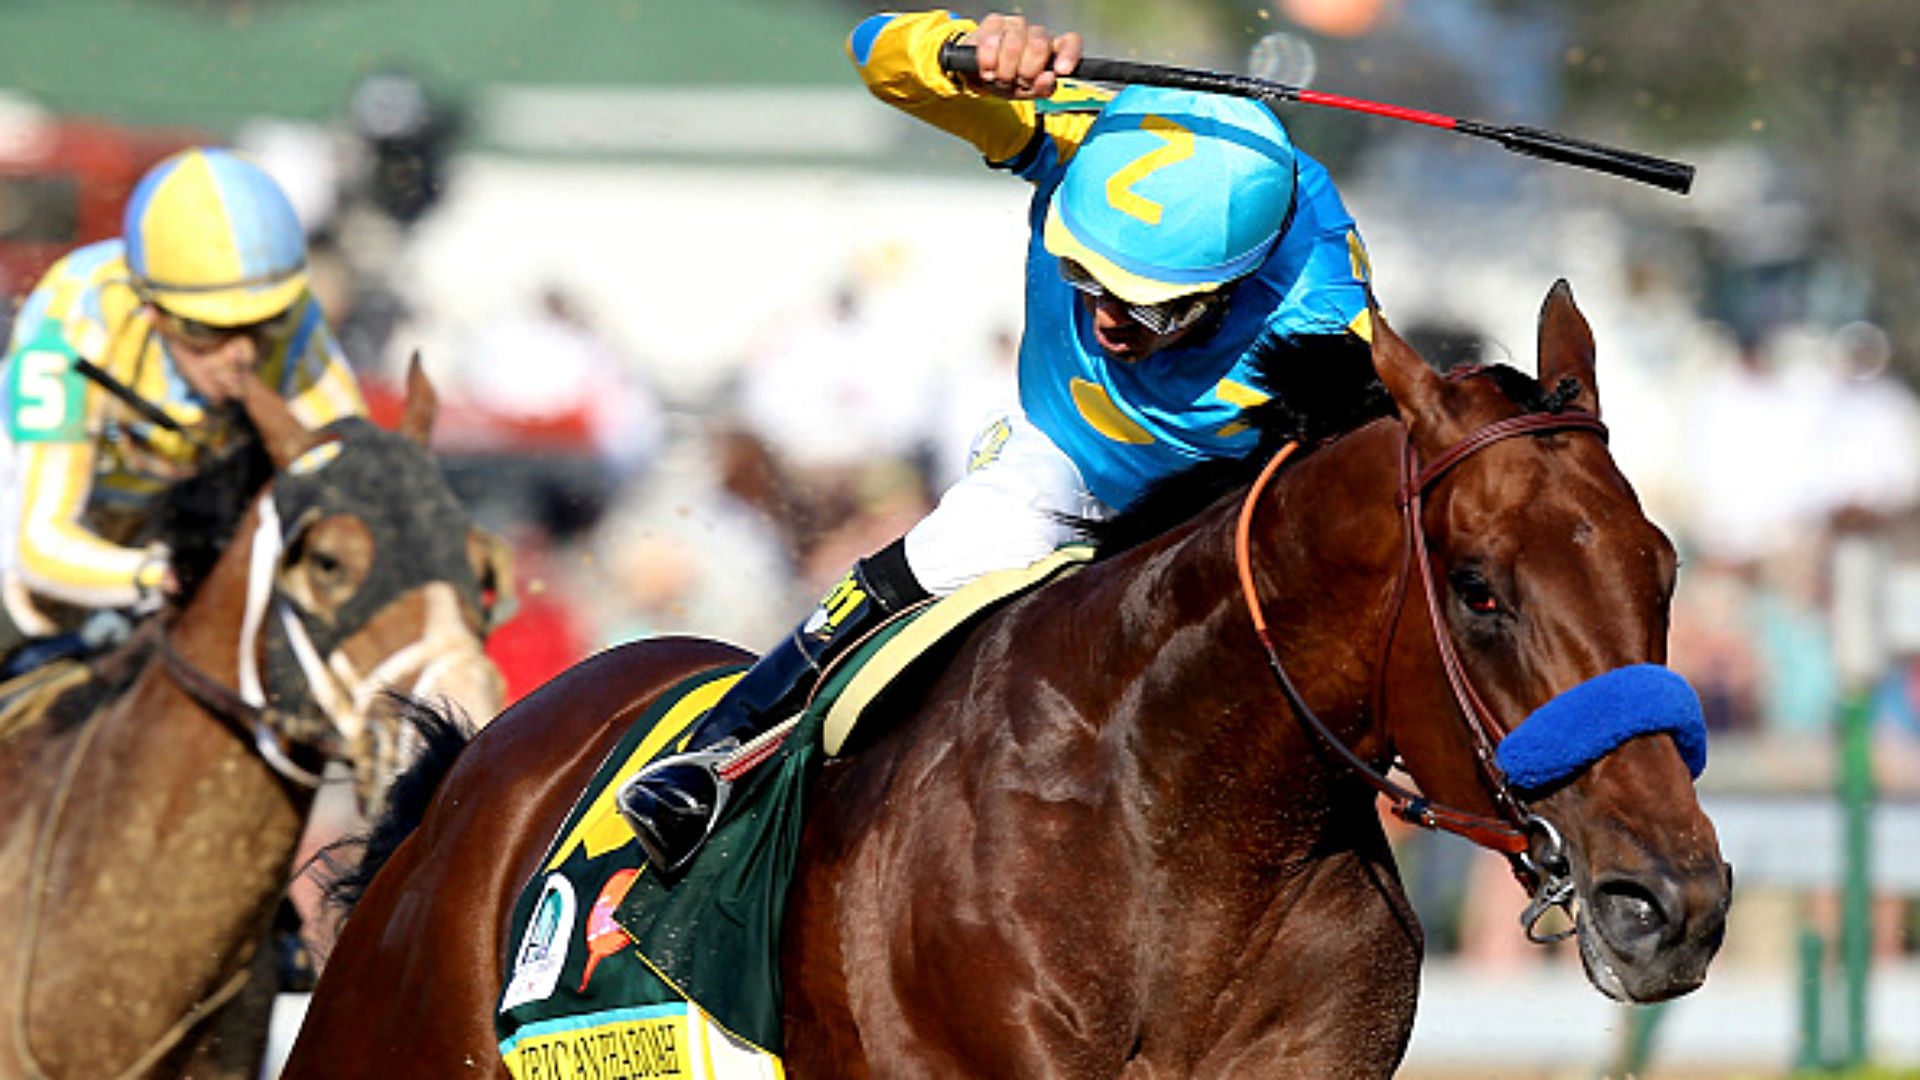 Haskell odds, props and betting analysis — How to wager around American Pharoah's huge price